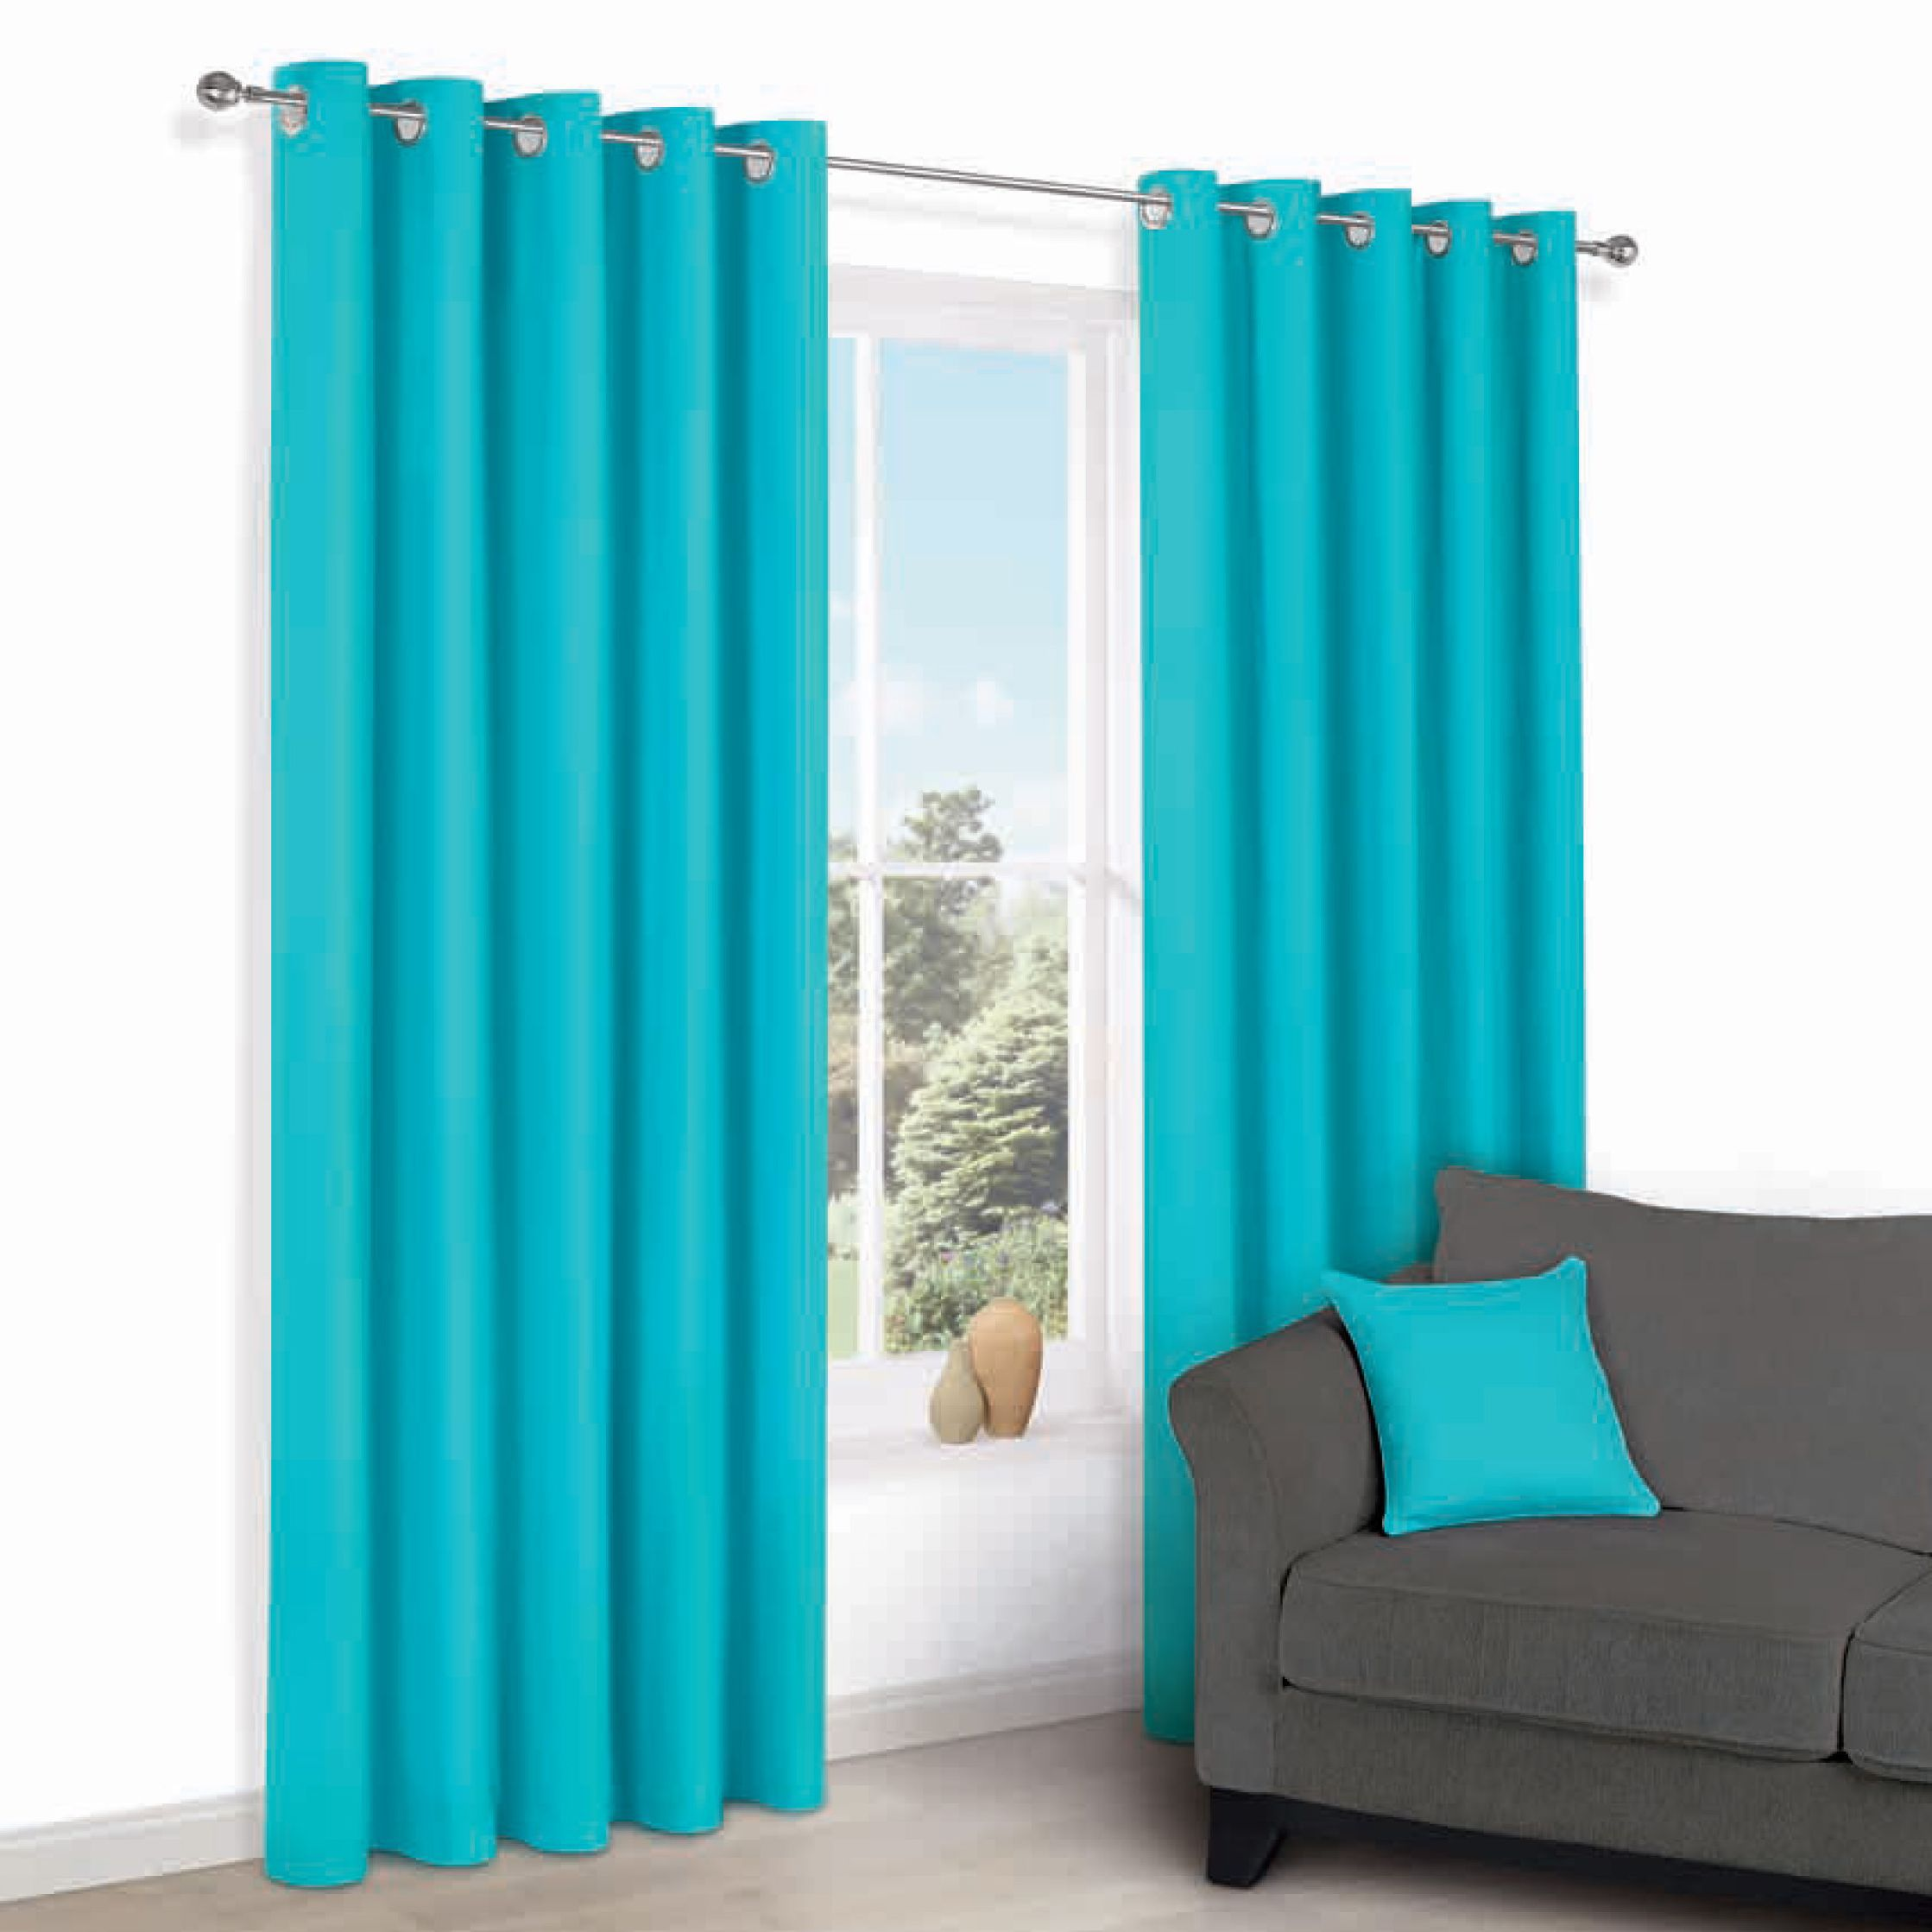 Zen Teal Plain Eyelet Curtains (w)228cm (l)228cm